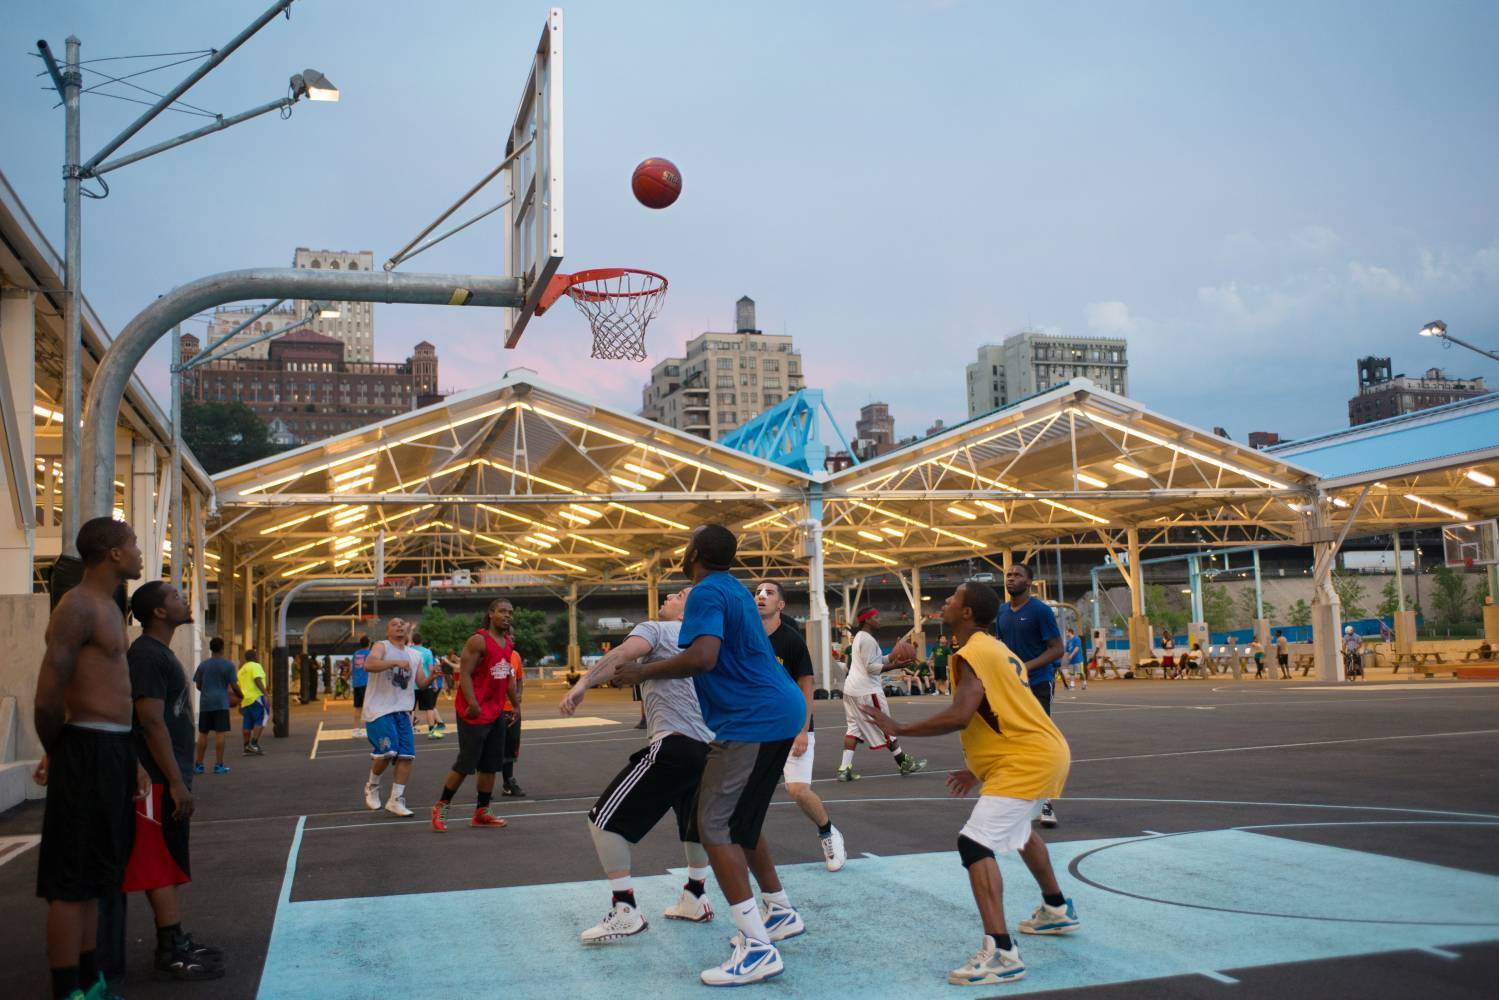 People playing basketball at Brooklyn Bridge Pier